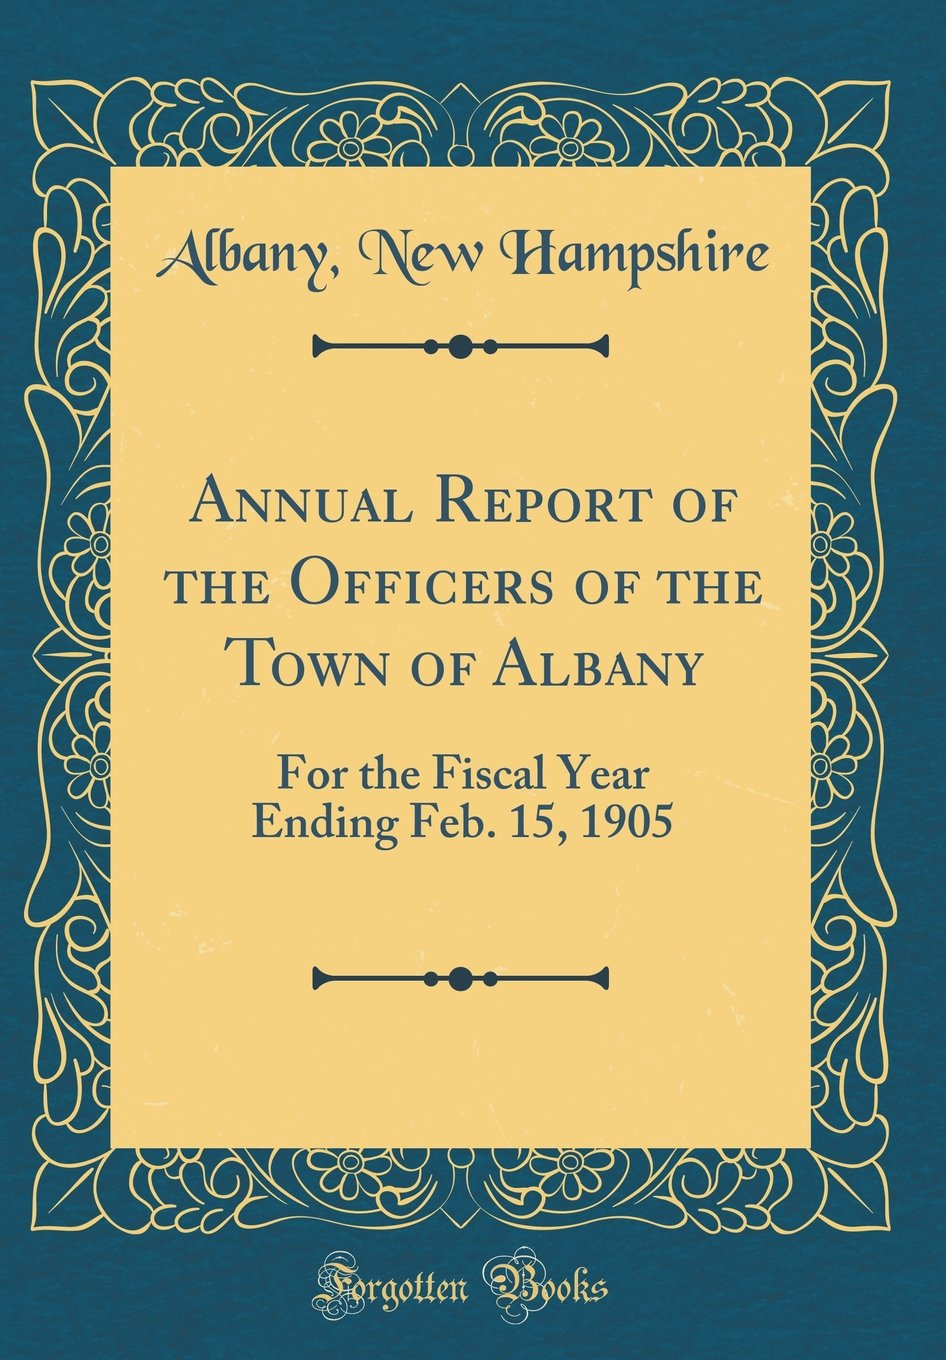 Read Online Annual Report of the Officers of the Town of Albany: For the Fiscal Year Ending Feb. 15, 1905 (Classic Reprint) PDF